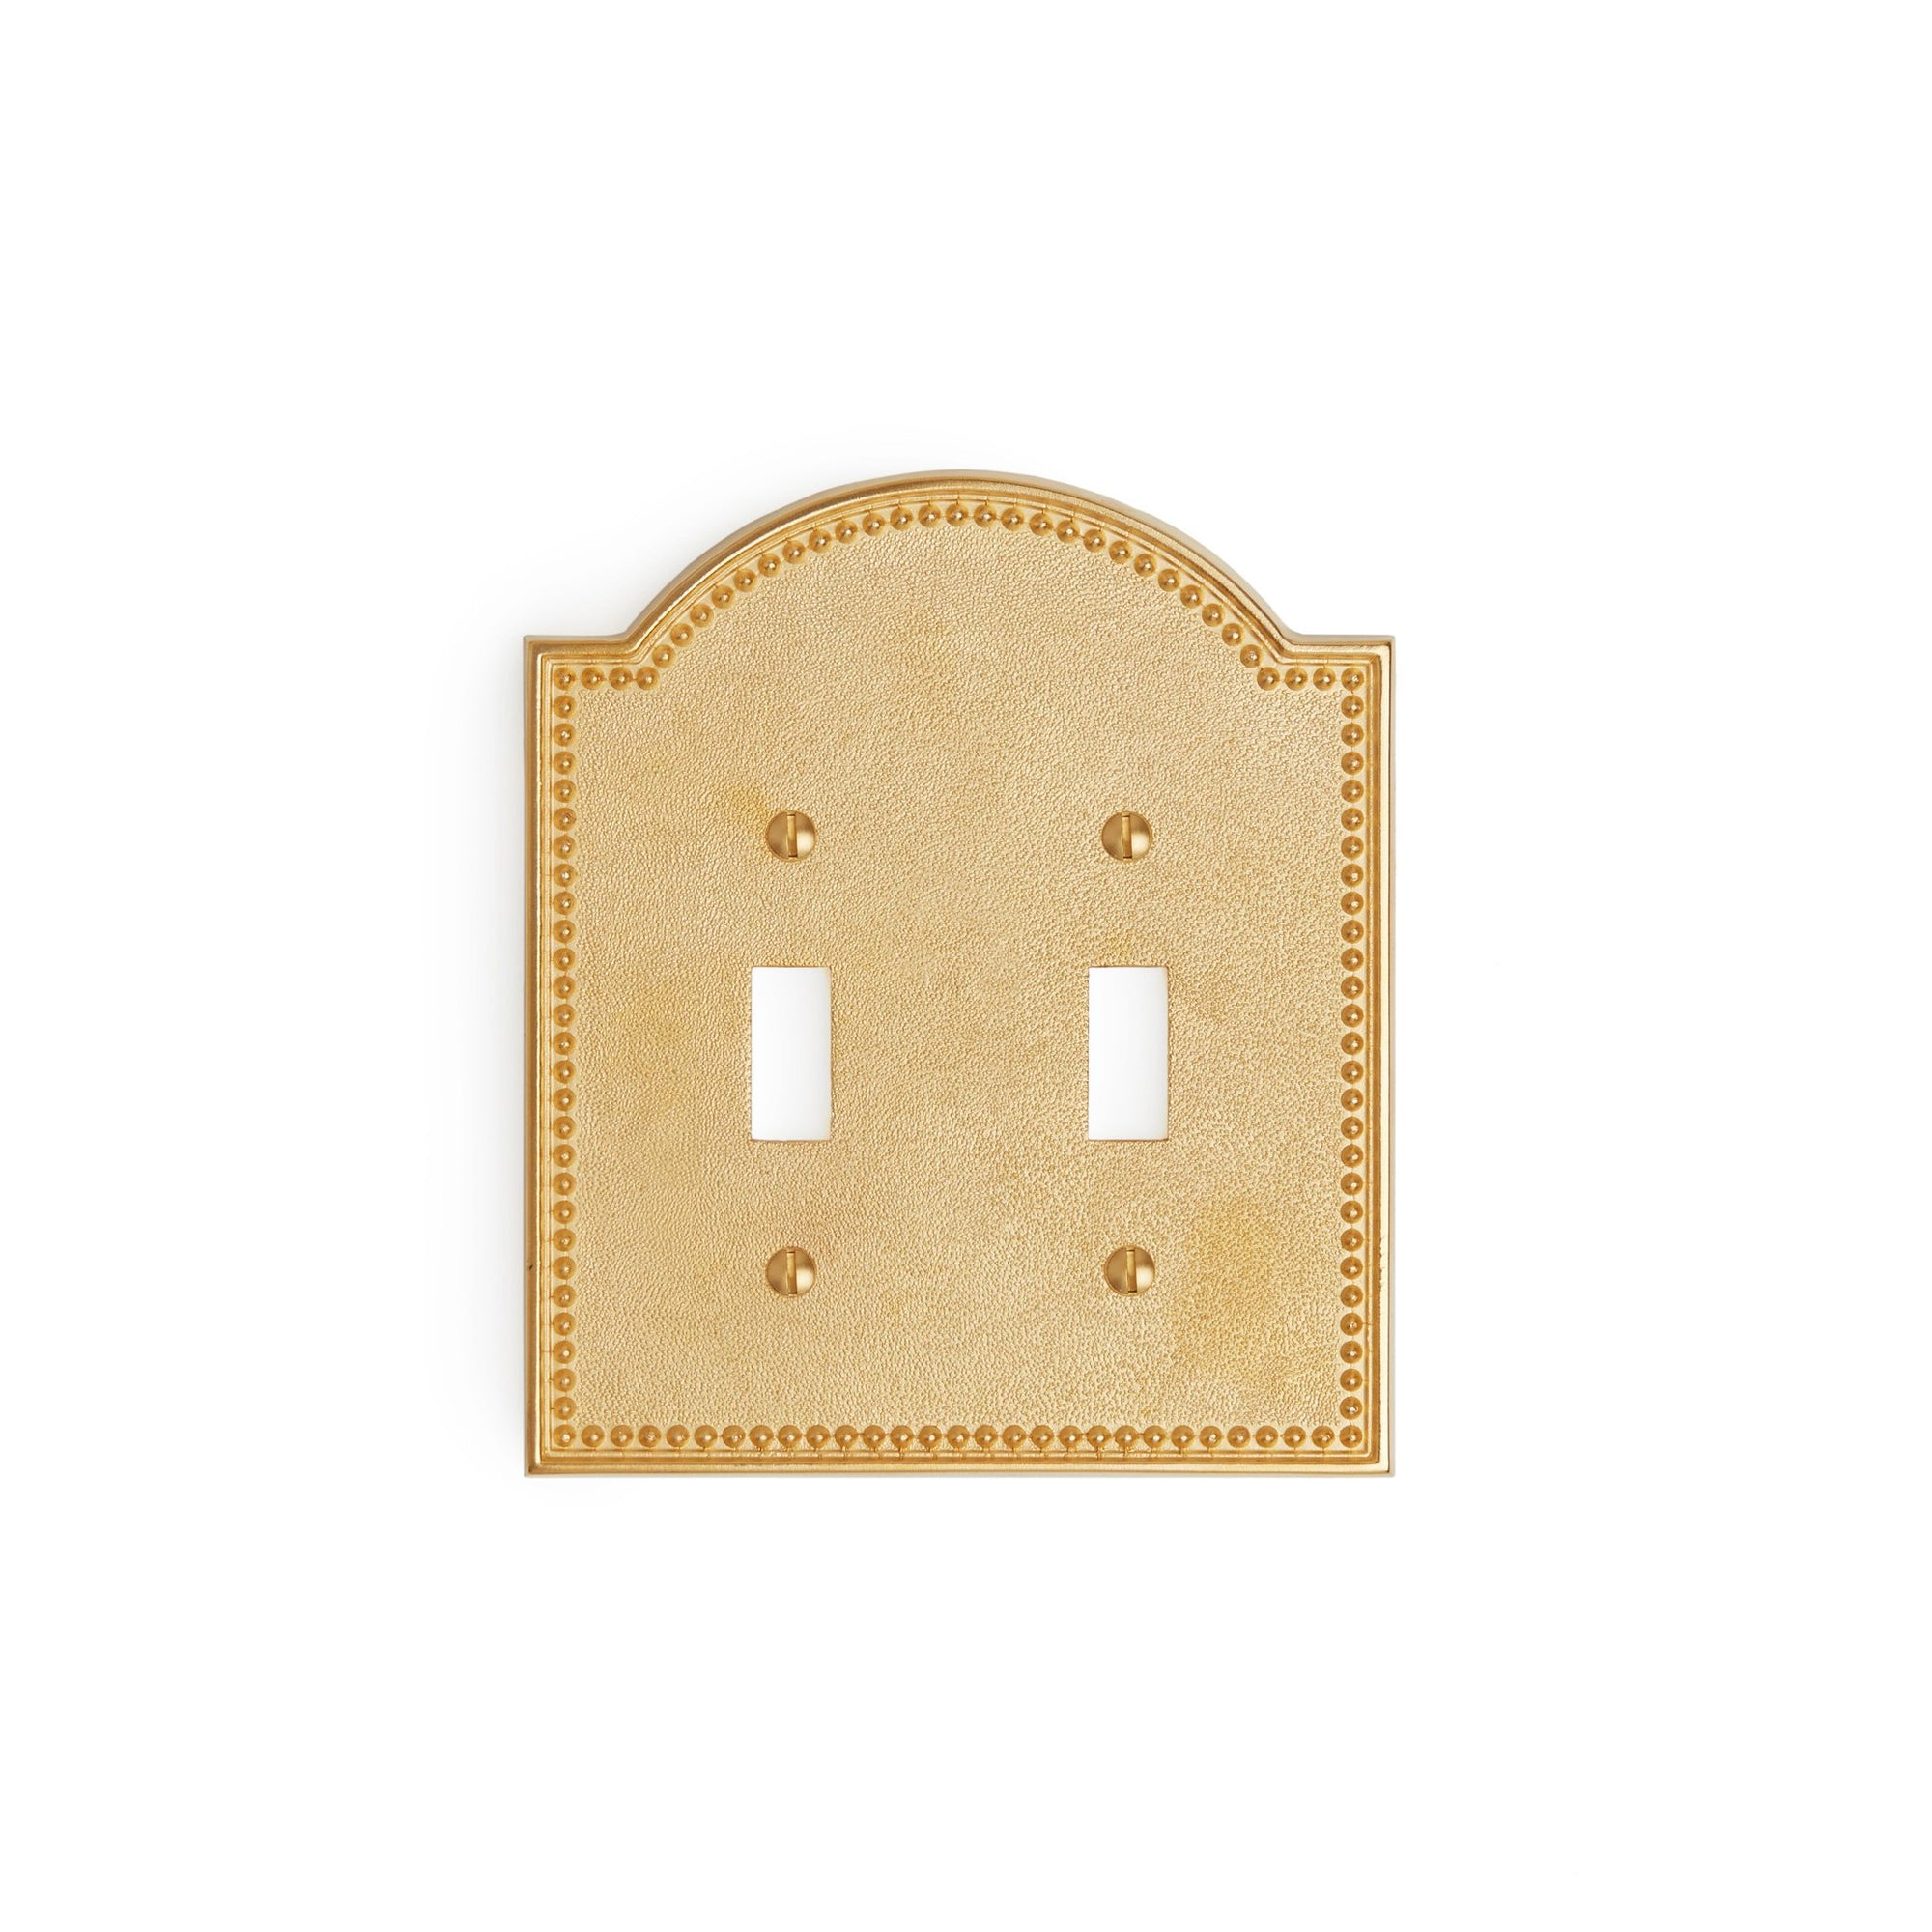 0464D-SWT-GP Sherle Wagner International Beaded Double Switch Plate in Gold Plate metal finish